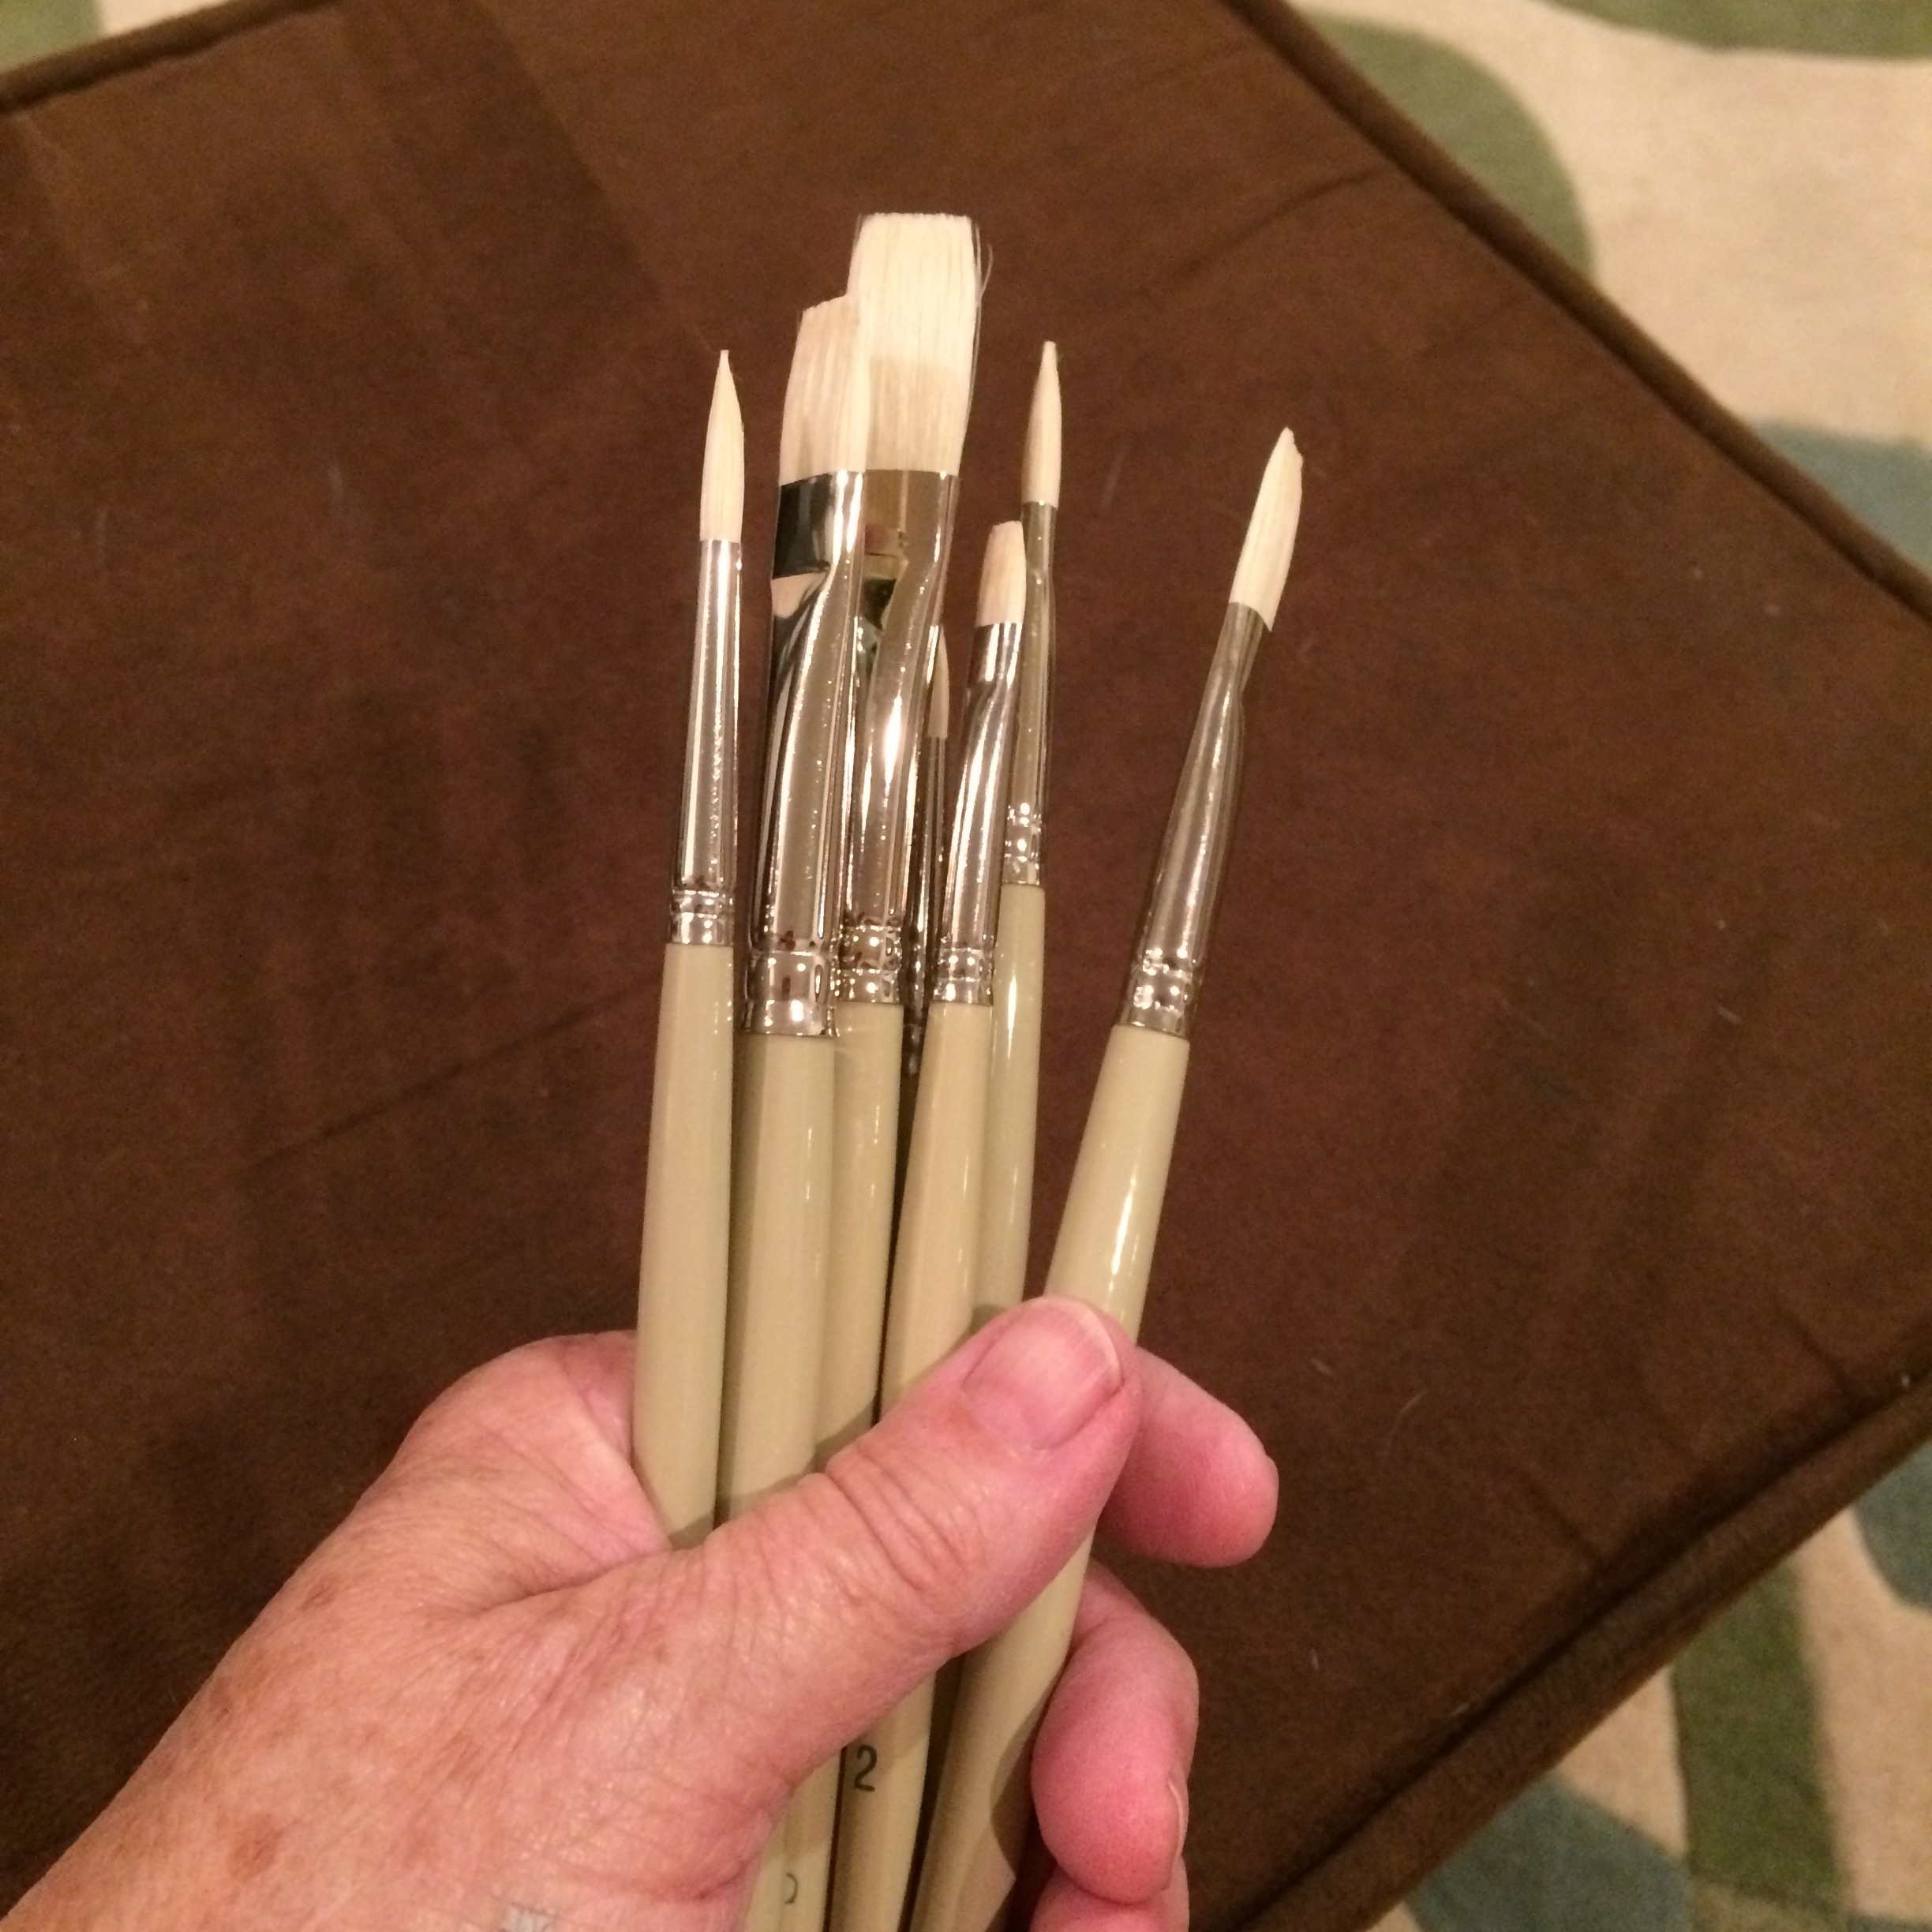 There's nothing like a batch of new brushes!